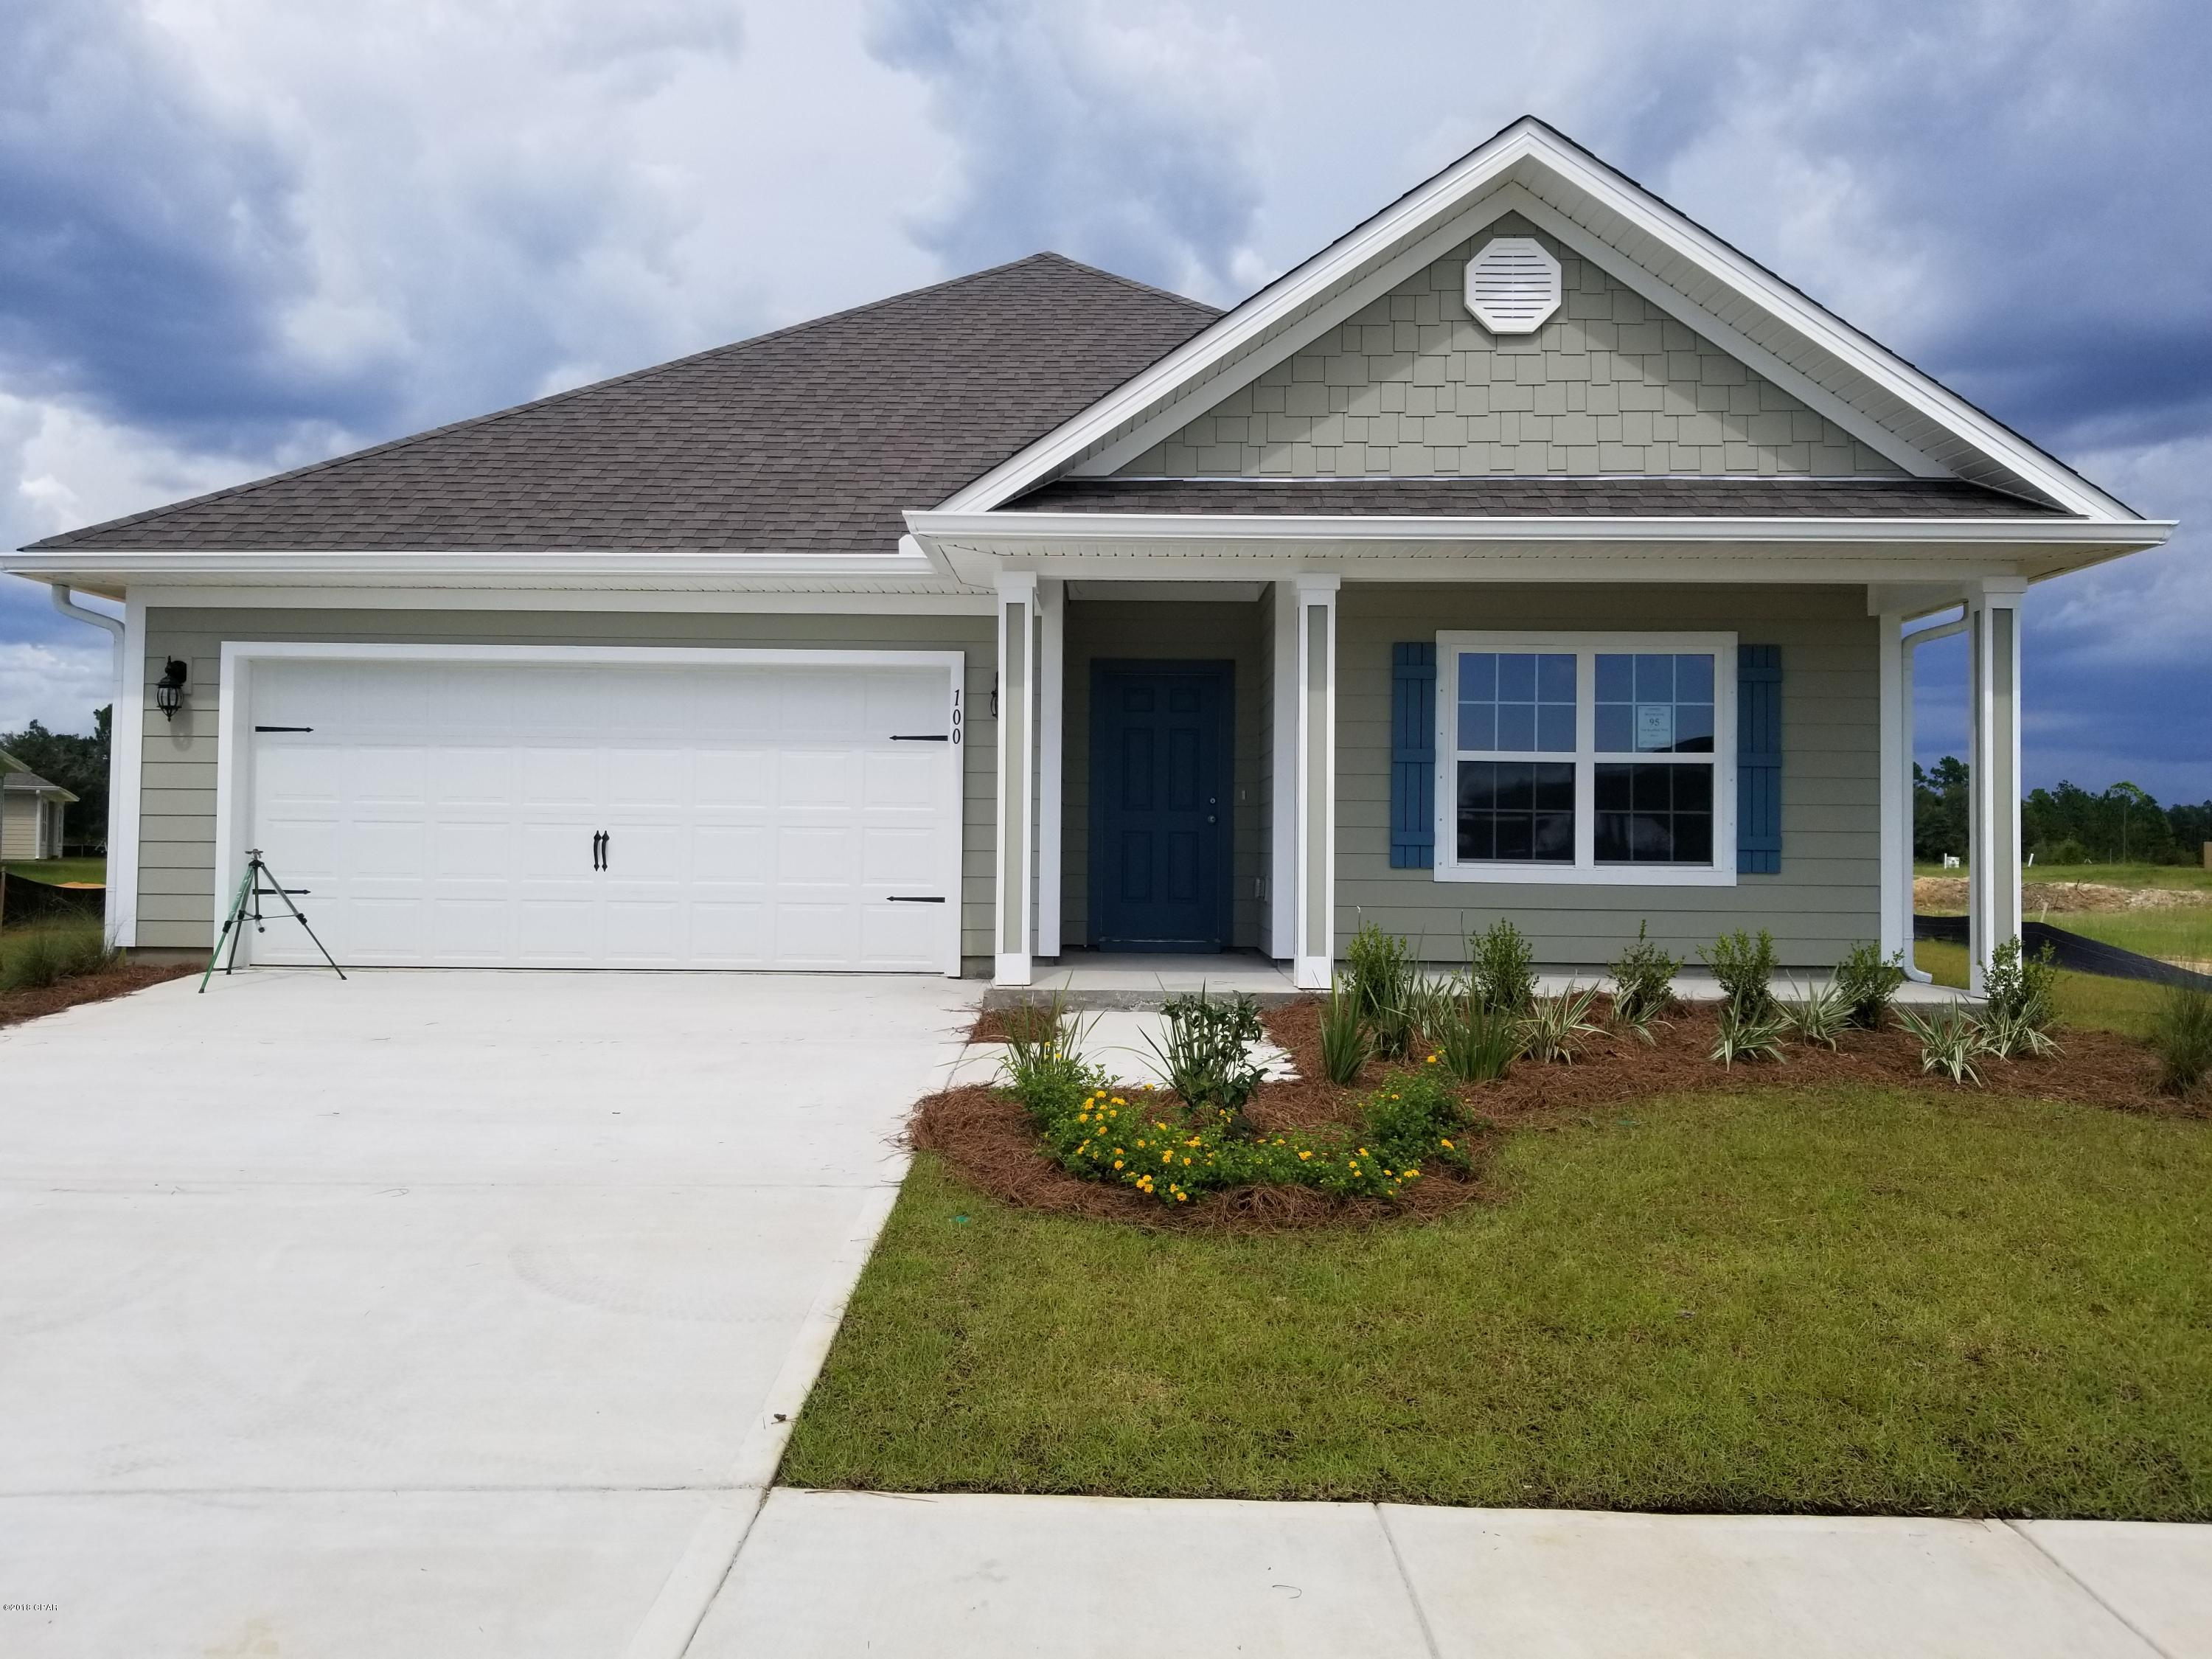 Photo of 134 N SHOREVIEW Drive, LOT 130 Panama City FL 32404